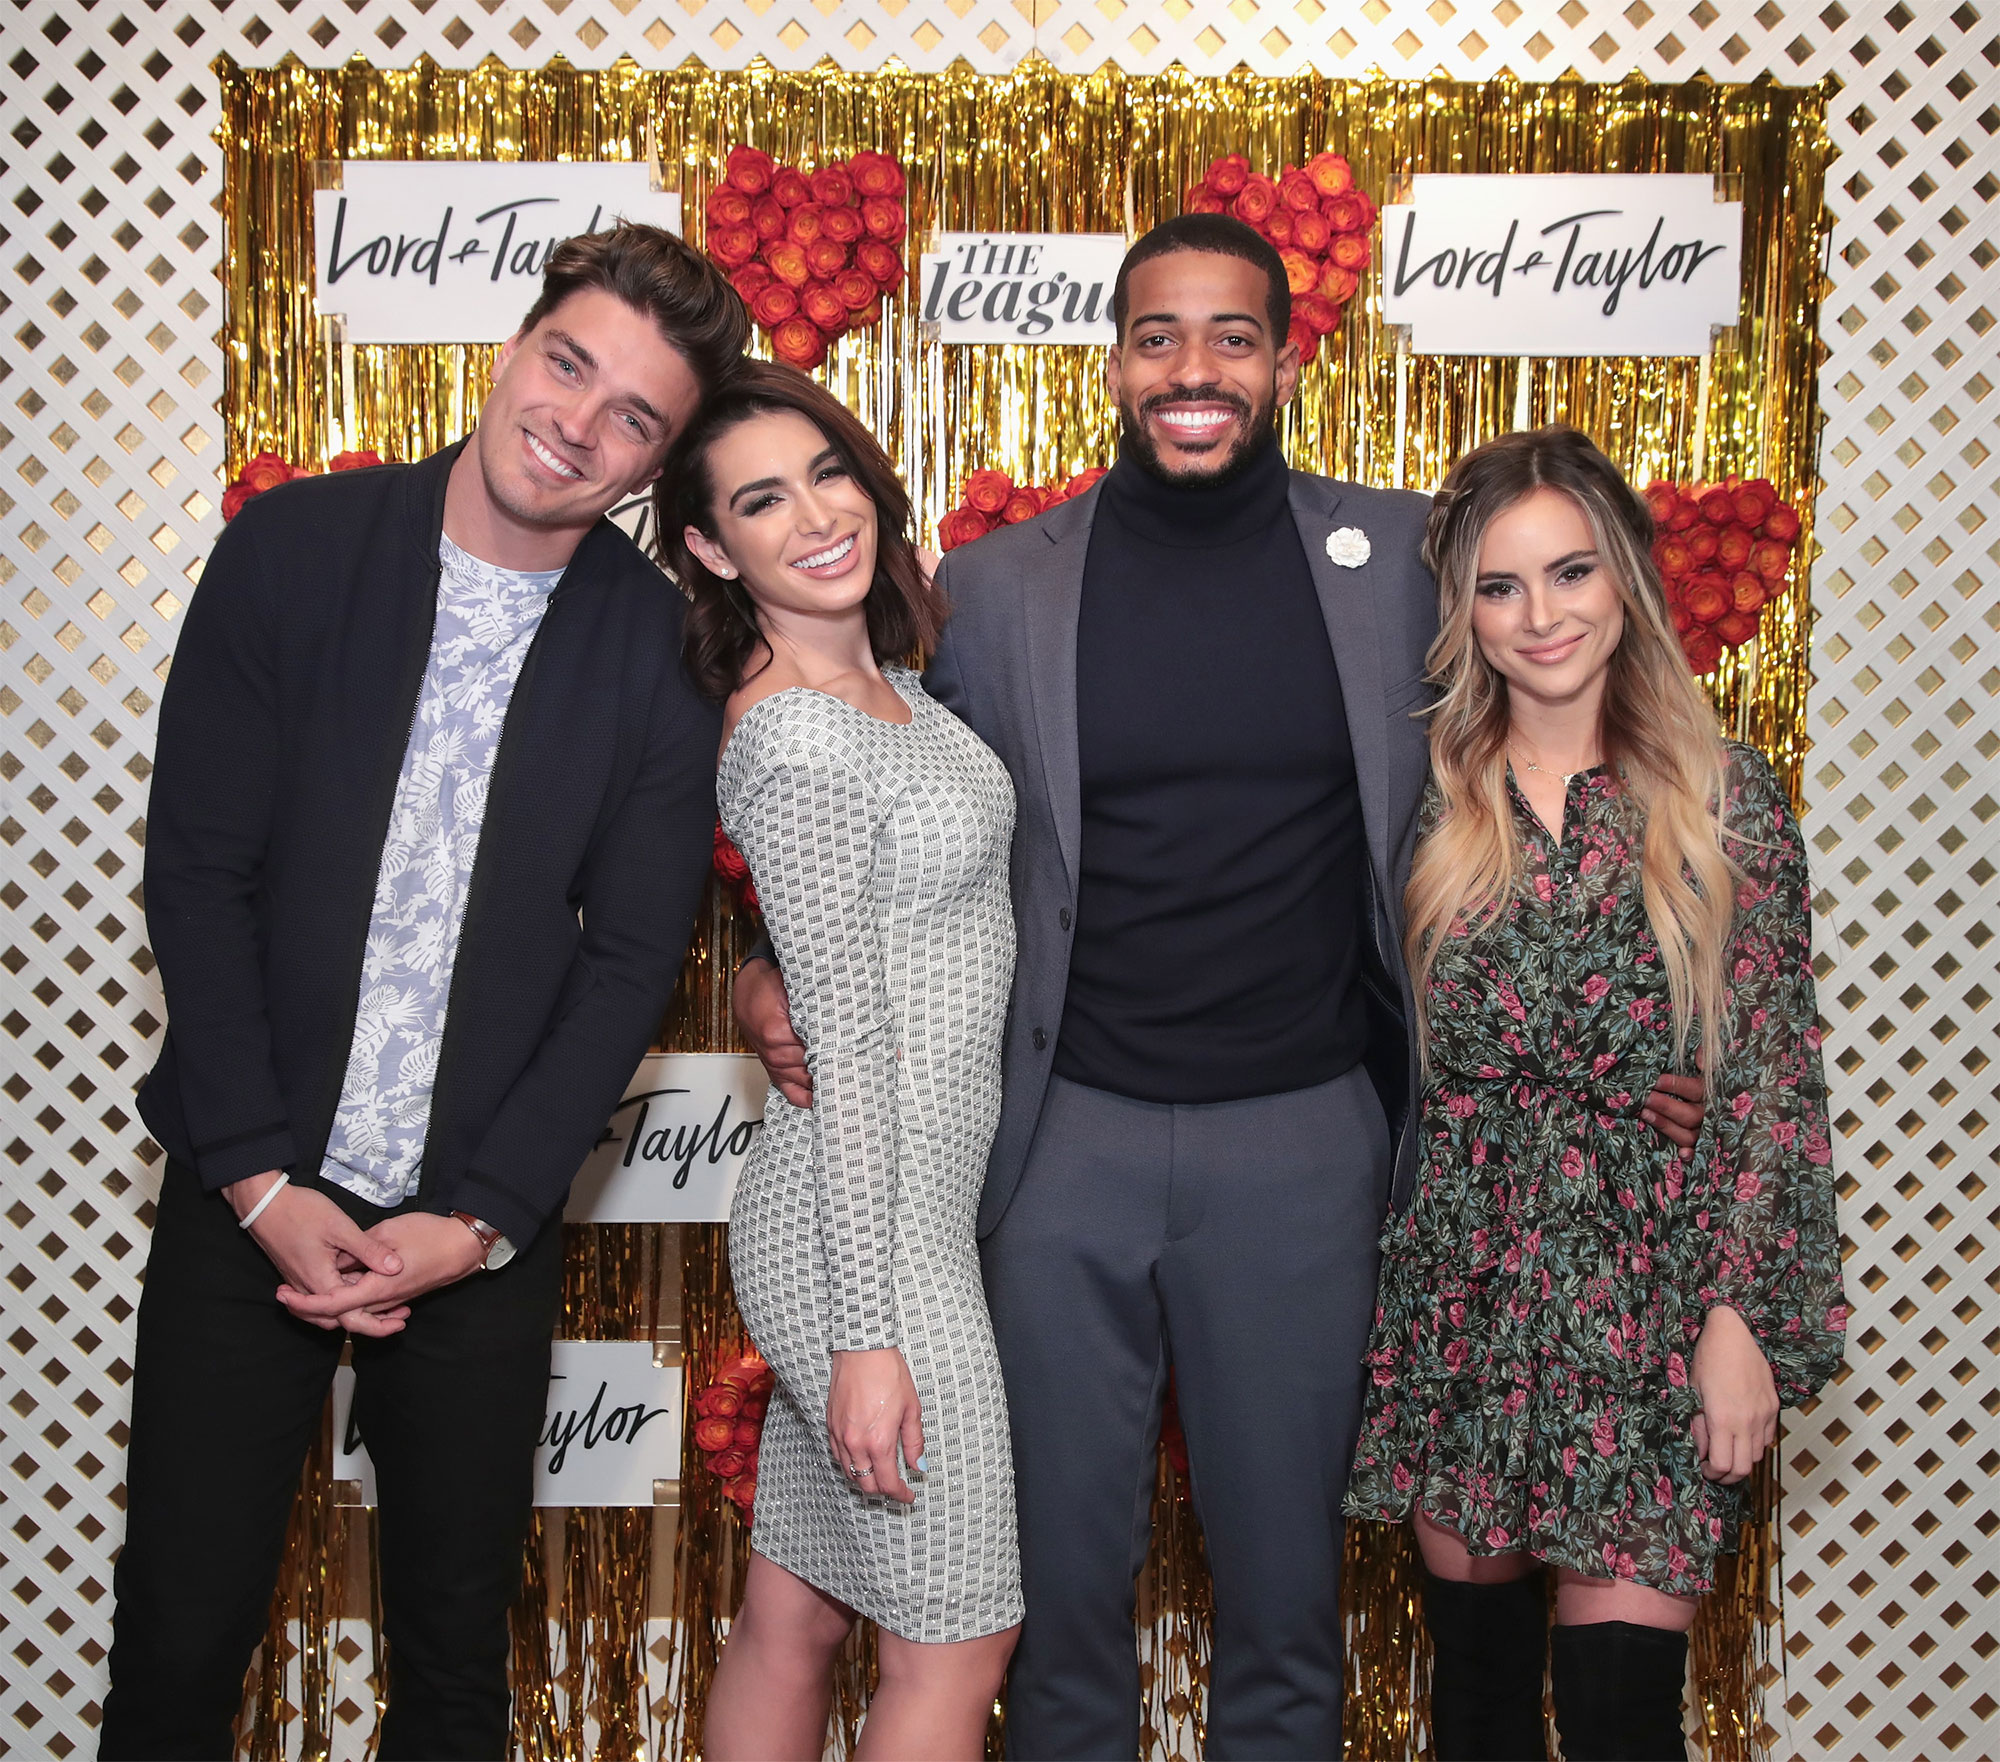 Lord & Taylor, The League Valentine's Day Speed Dating With Dean Unglert, Amanda Stanton, Ashley Iaconetti, And Eric Bigger